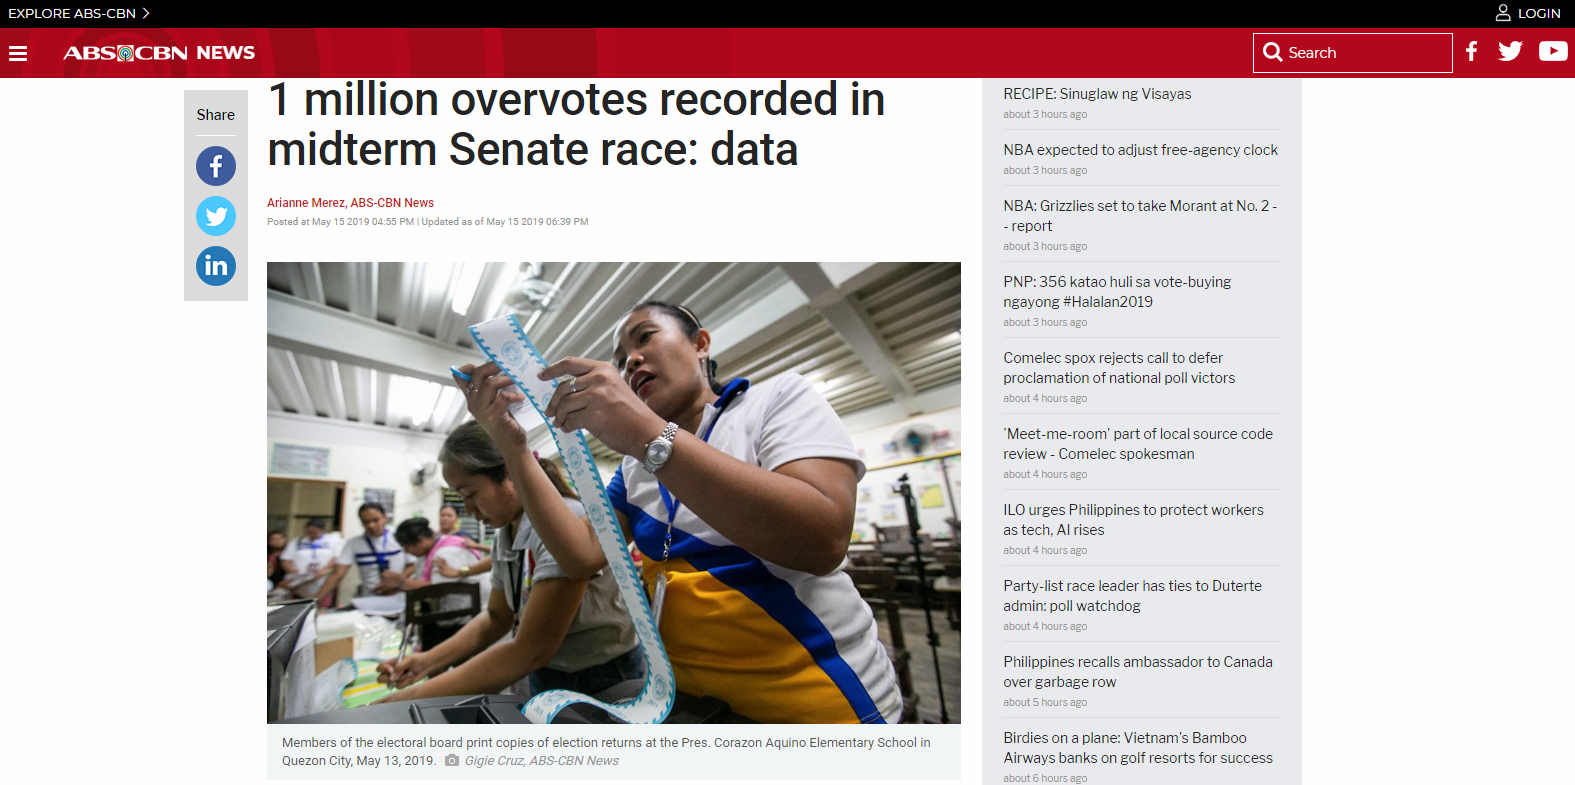 1 million overvotes recorded in midterm Senate race: data